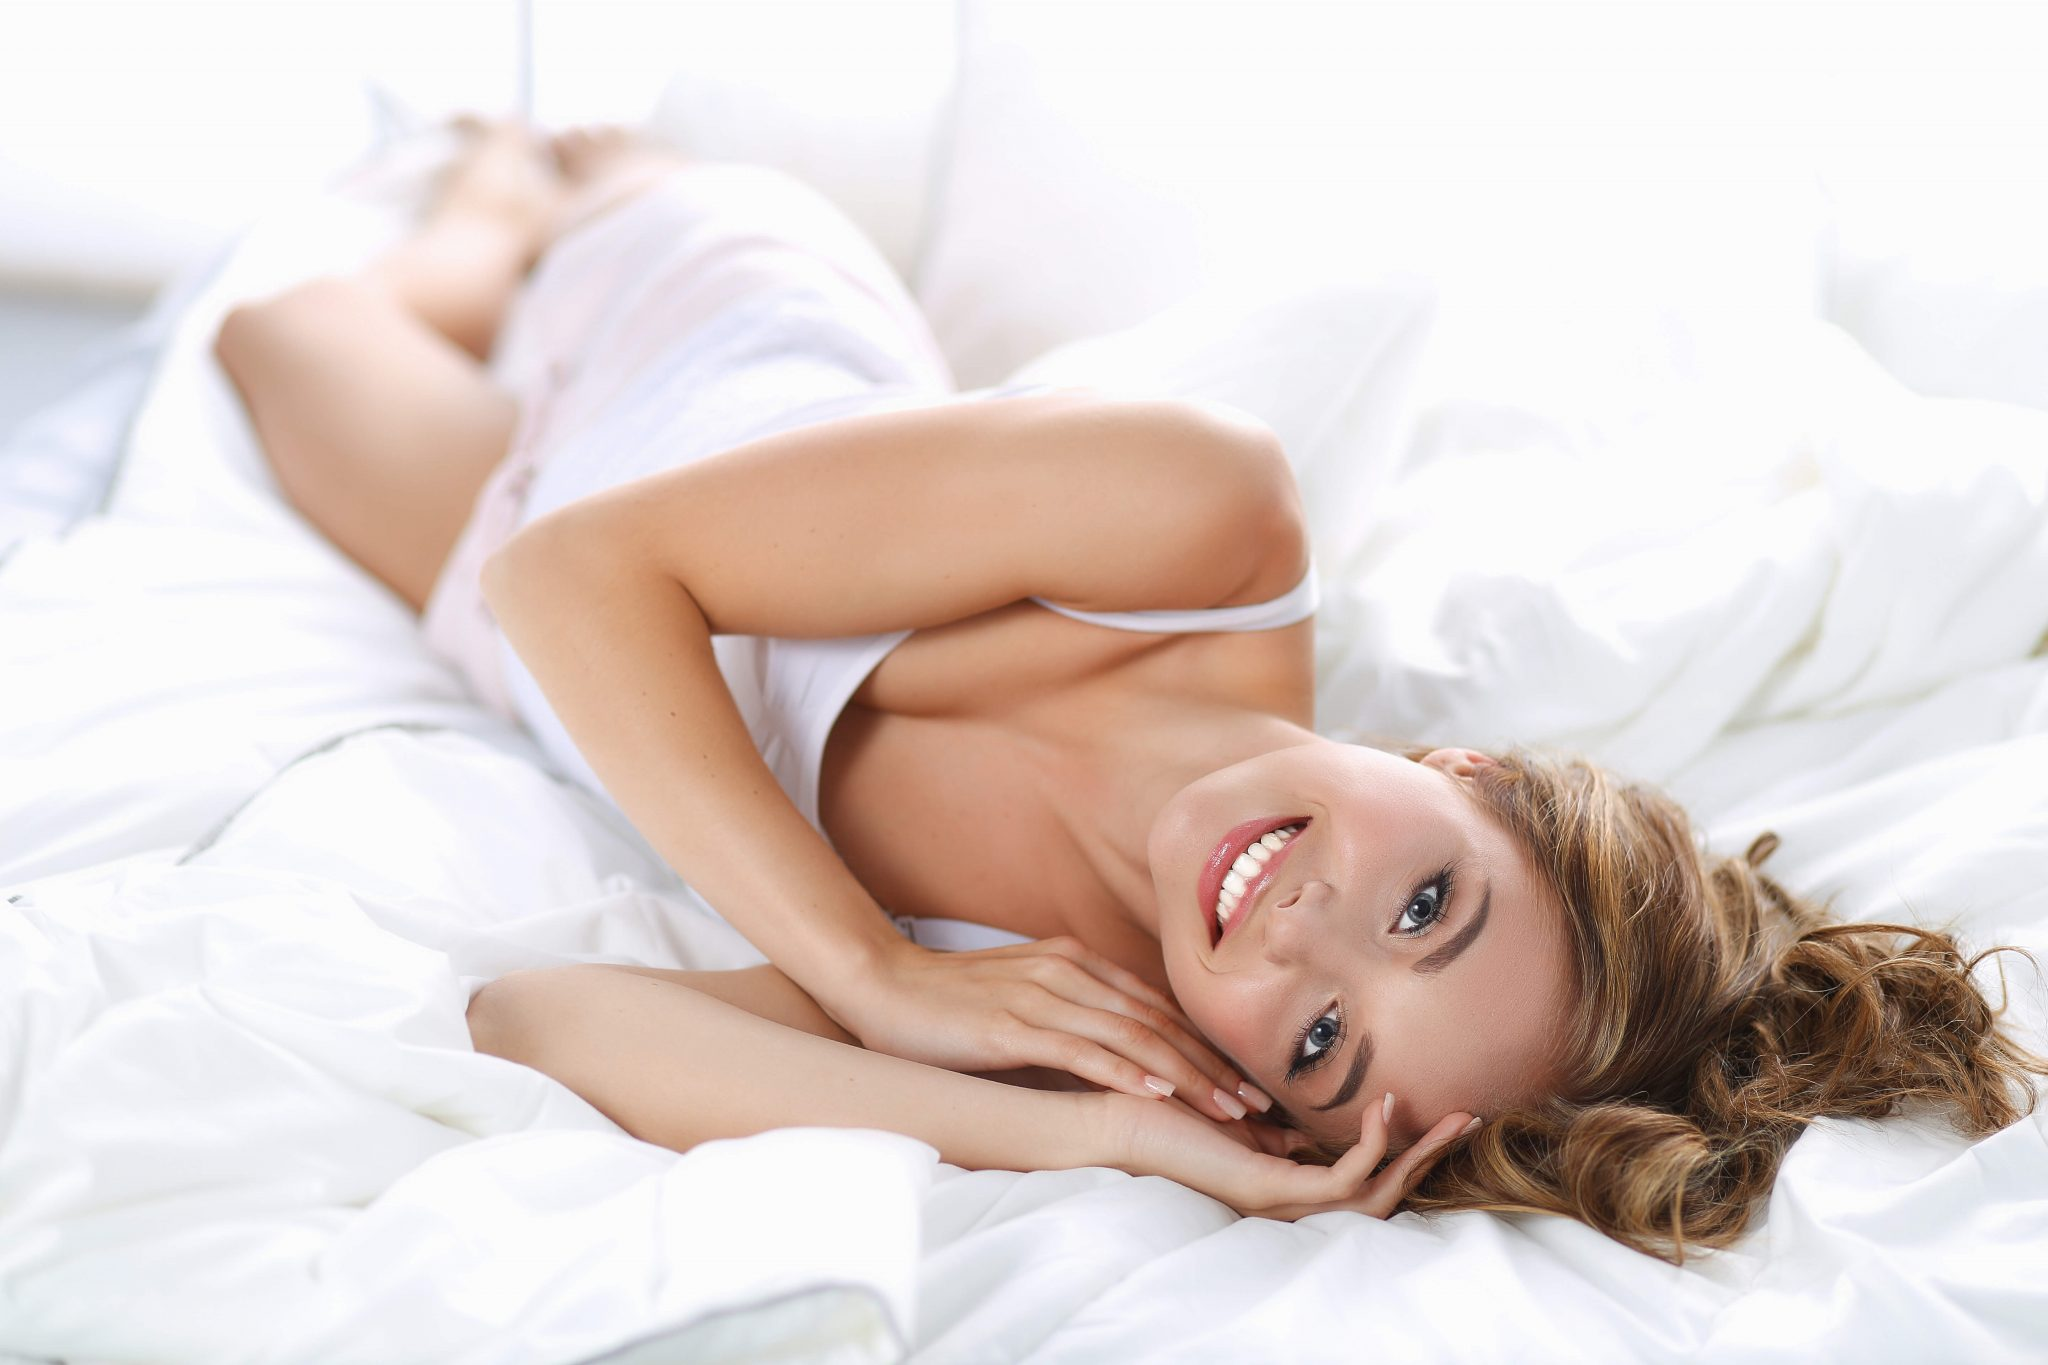 A young lady laying on bed